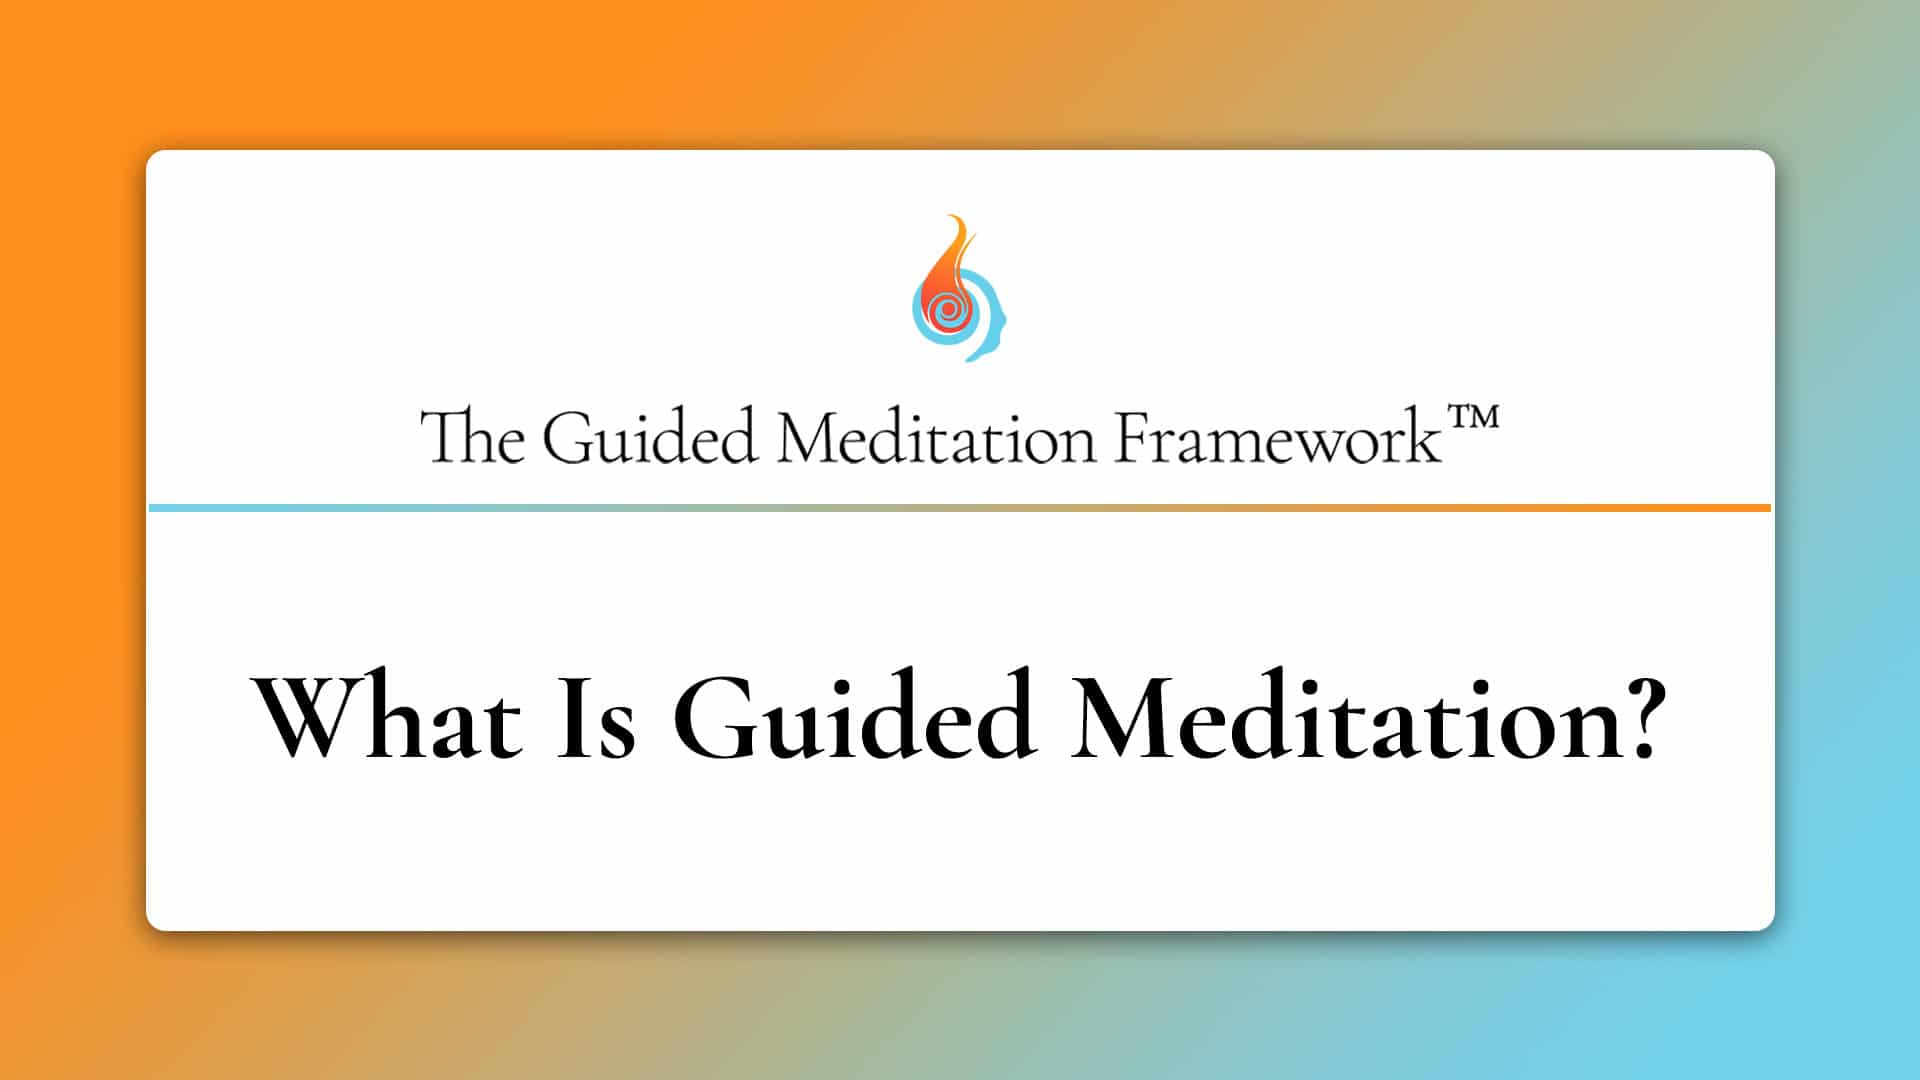 The Guided Meditation Framework guided meditation